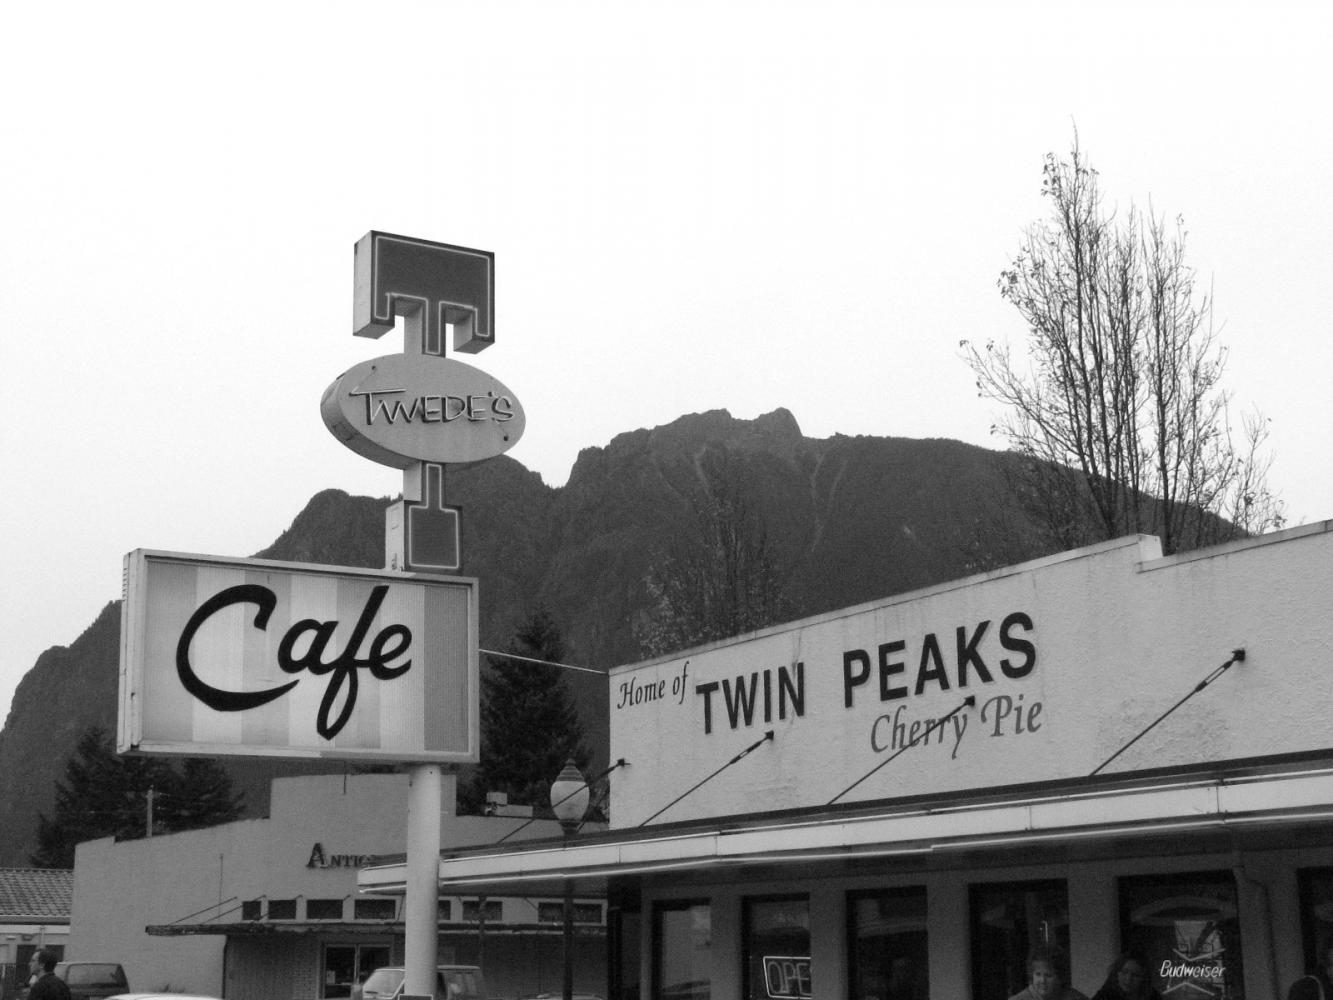 Twede%27s+diner+in+Snoqualmie%27s+North+Bend+served+as+a+major+setting+during+the+original+filming+of+Twin+Peaks.+